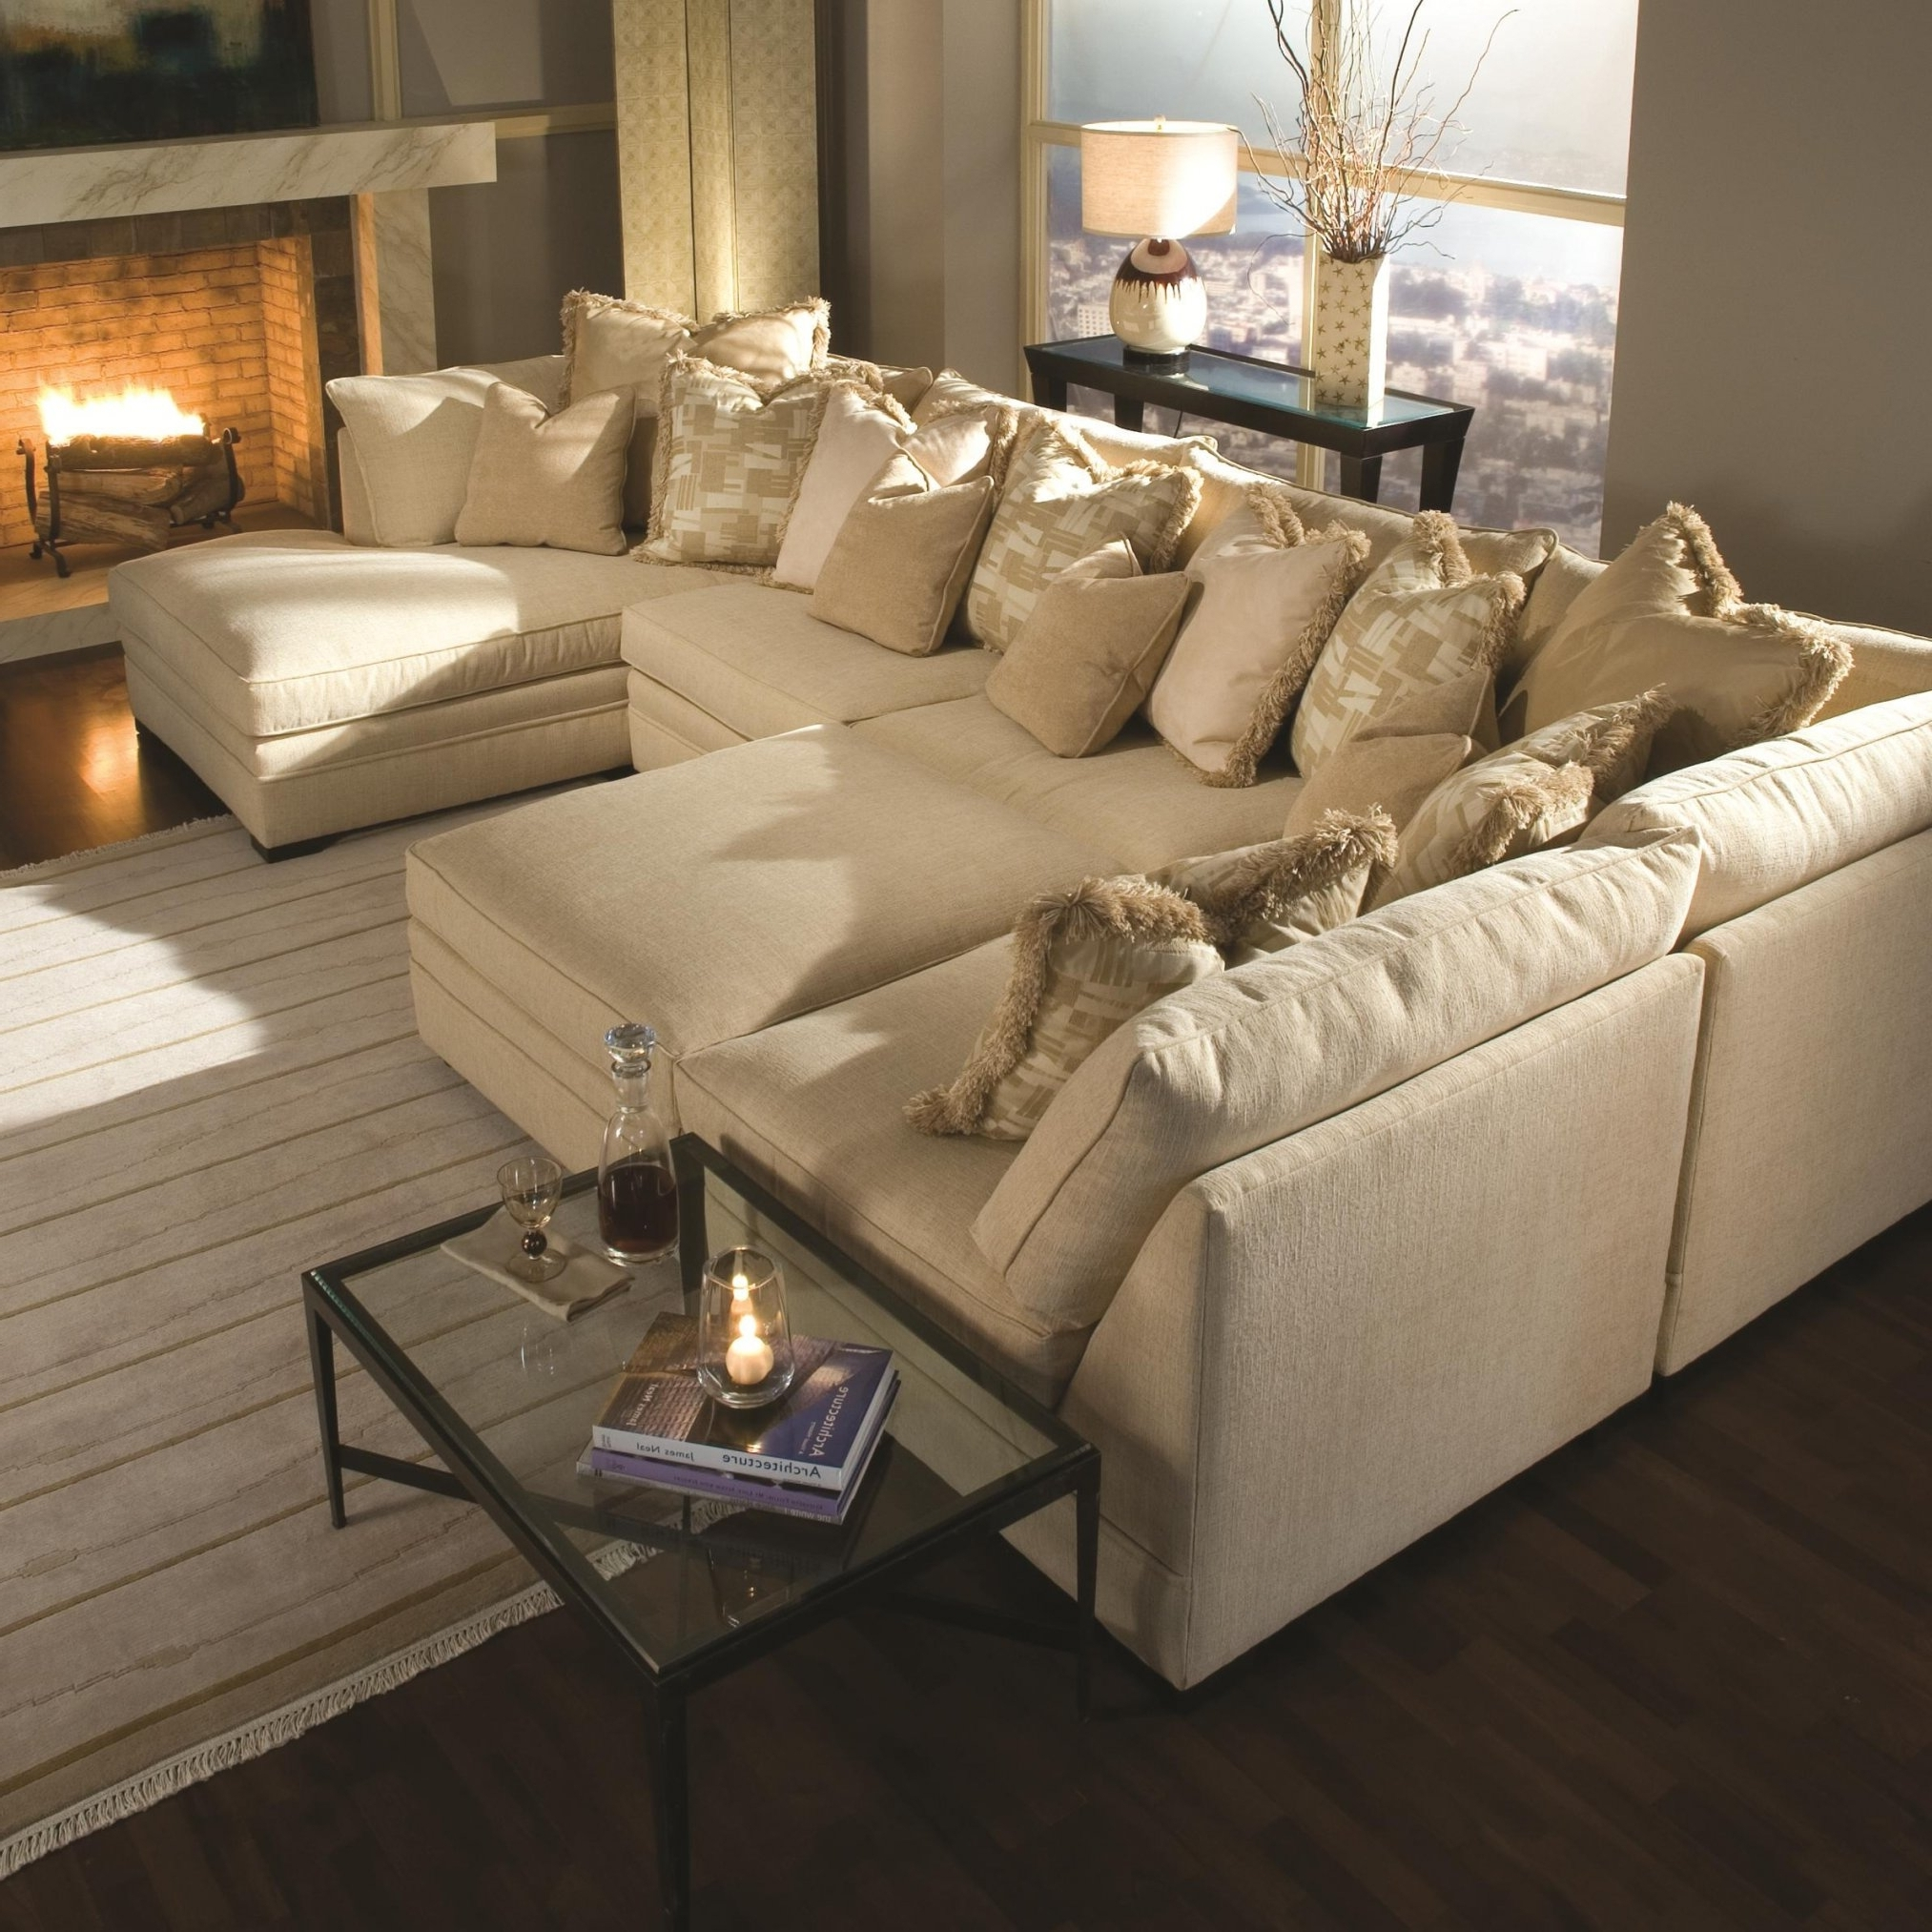 Sofa : 92 Unbelievable Double Chaise Sectional Sofa Picture With Regard To 2017 Wide Sectional Sofas (View 6 of 15)